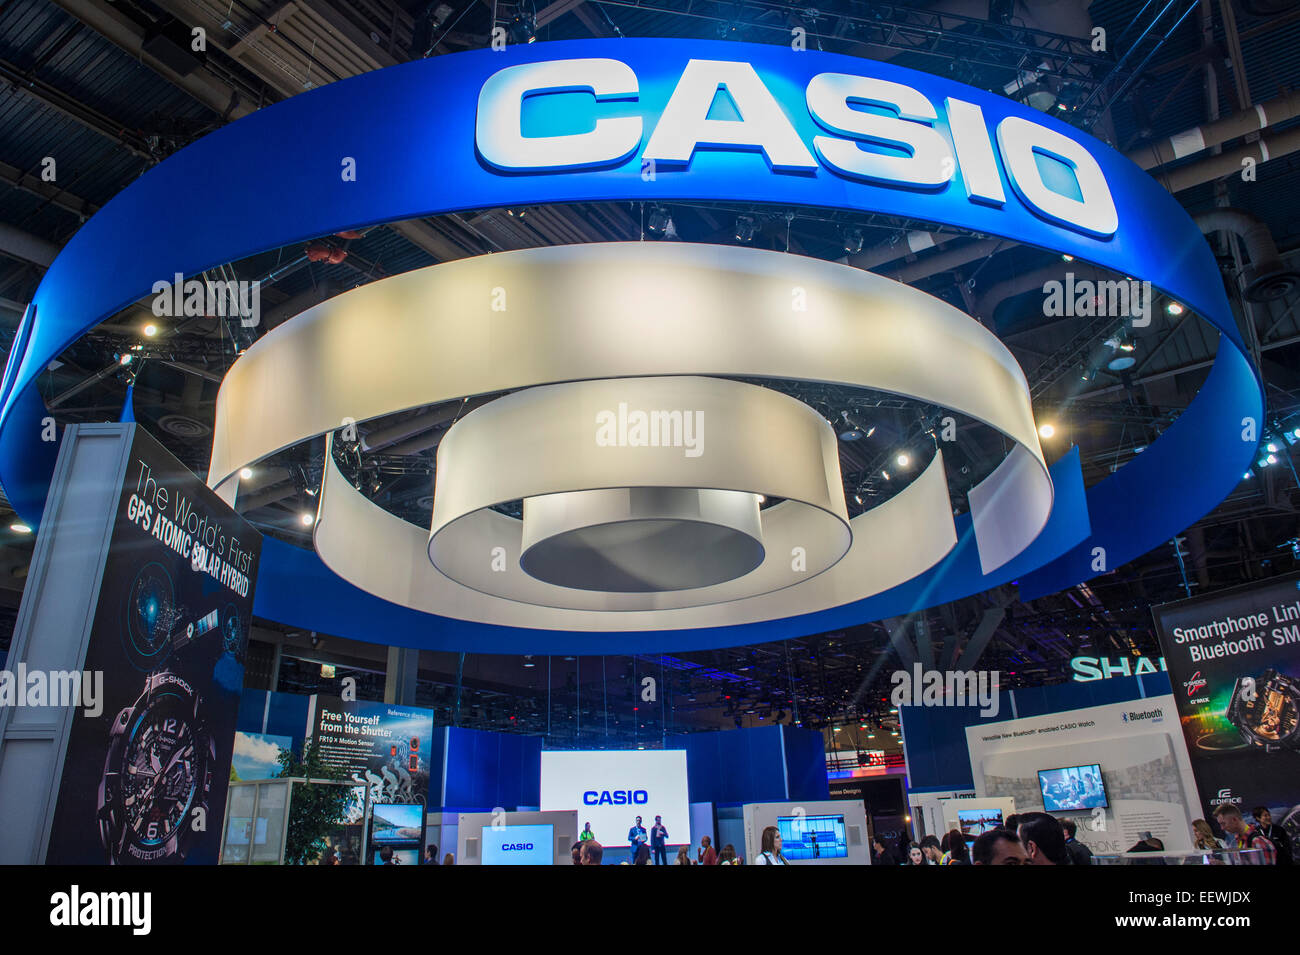 The Casio booth at the CES show held in Las Vegas - Stock Image